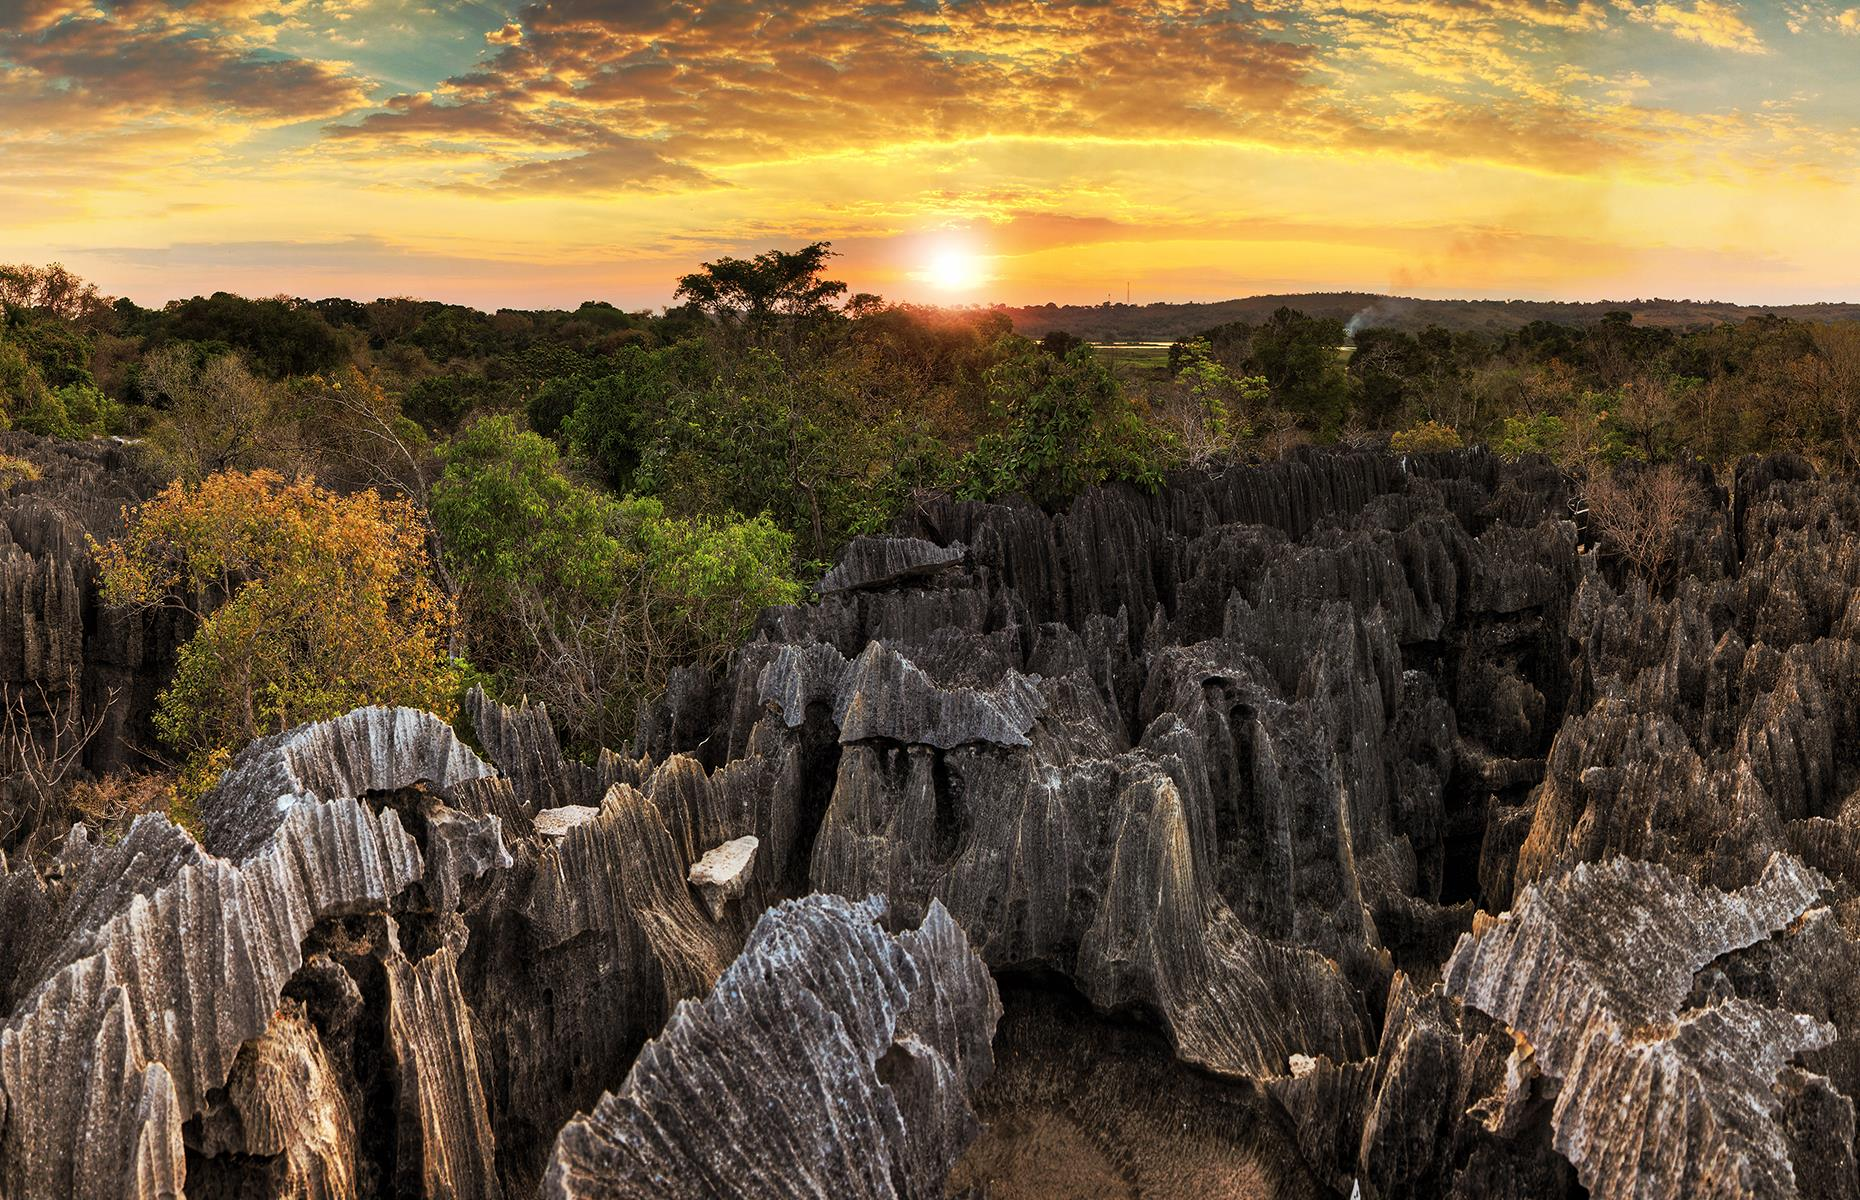 Slide 19 of 44: It's hardly surprising that this labyrinth of needle-shaped rock formations remains largely unexplored. Except for a few trails, bridges and viewpoints, much of this national park in Madagascar is untouched by humans.